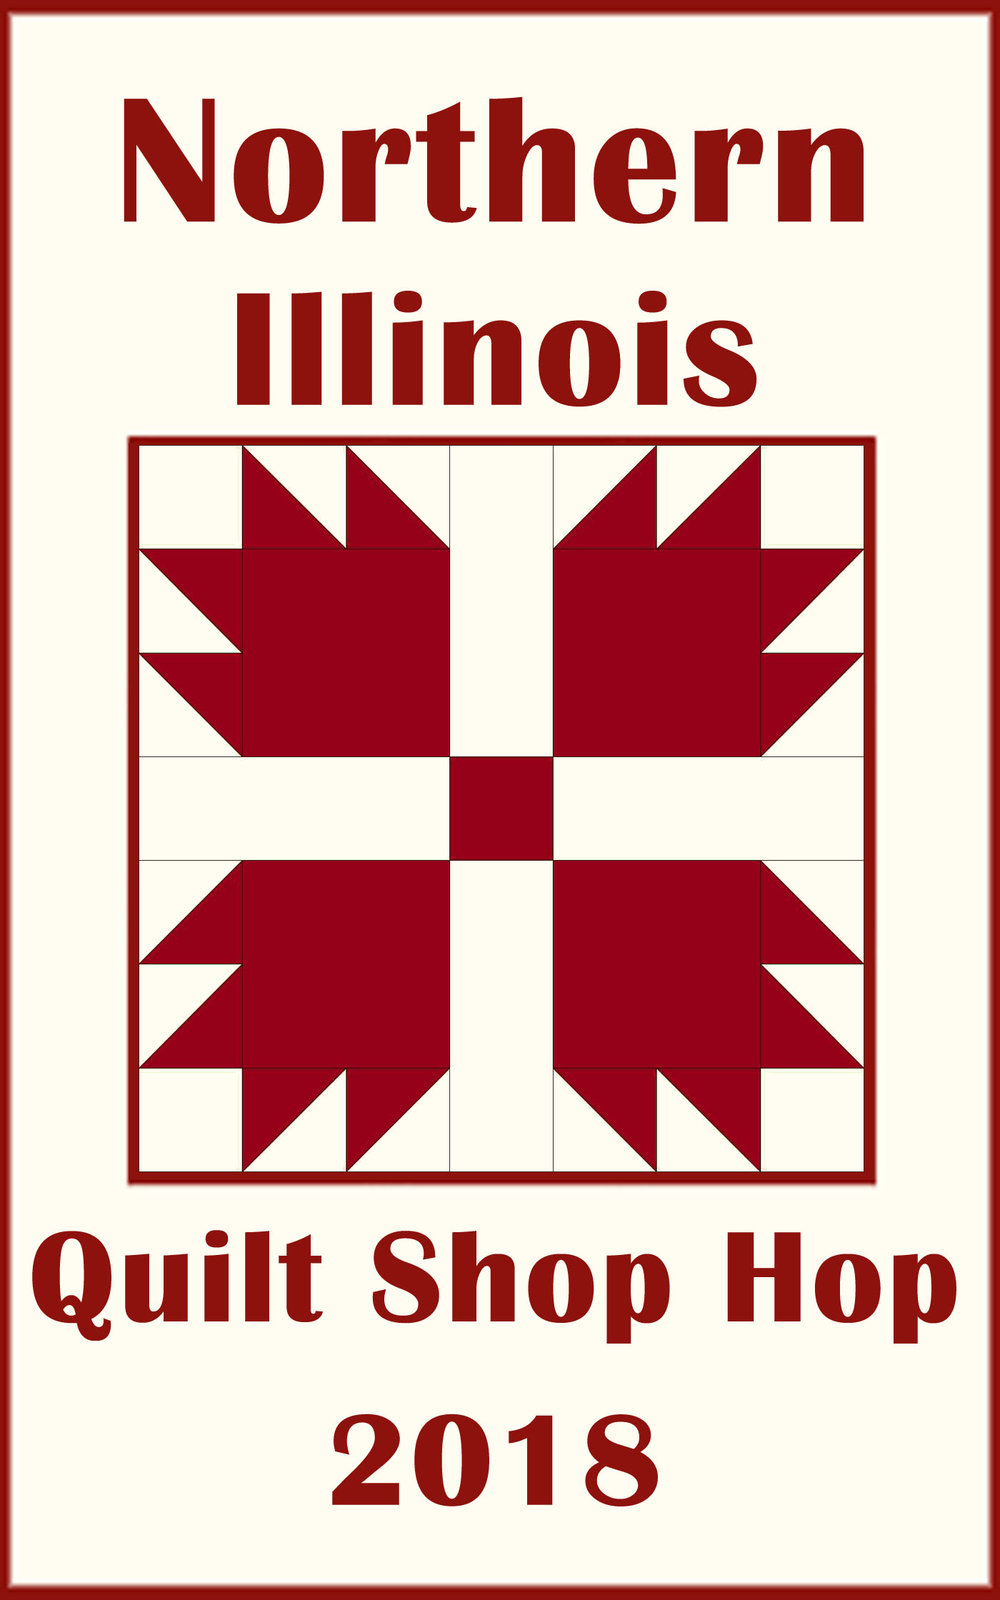 TQT is excited to be part of the Northern Illinois Quilt Shop Hop again. Thirty three of the best quilt shops in Illinois are participating. The Hop runs all summer - from June 1 - August 31.On the day you get your passport stamped, you will receive a 15% discount on regularly priced merchandise.Visit all 33 shops and be eligible to win the grand prize of a Quilting Cruise for you and a friend! There are also prizes for visiting the shops within one of three regions. TQT is in Region 3. Passports are available in the shop, or by clicking the link below. - --> Click here to visit the NIQSH website for more details.--> Click here to download your Region 3 passport.